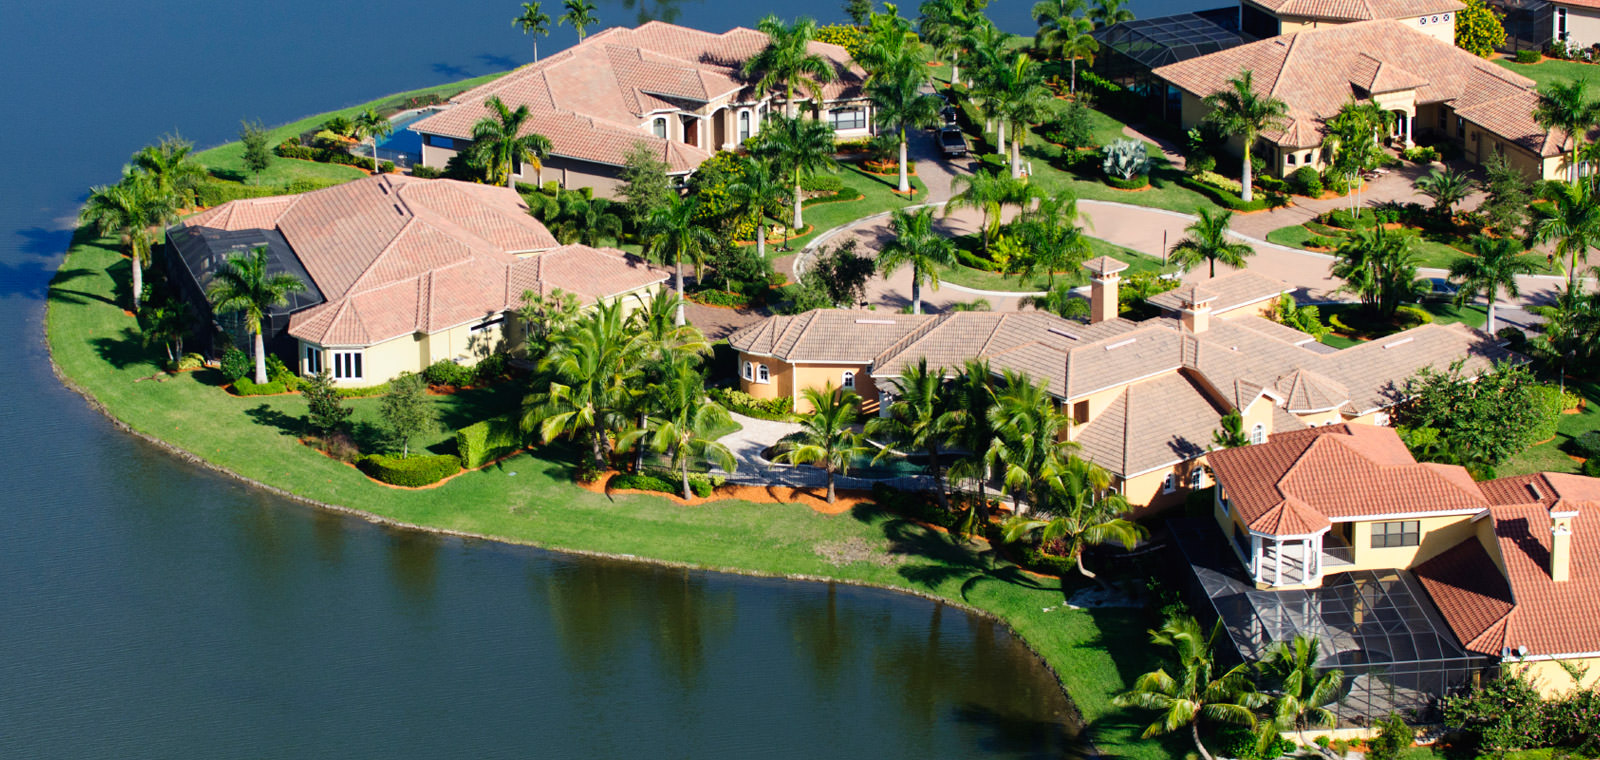 Lake side house - Real Estate Orlando FL